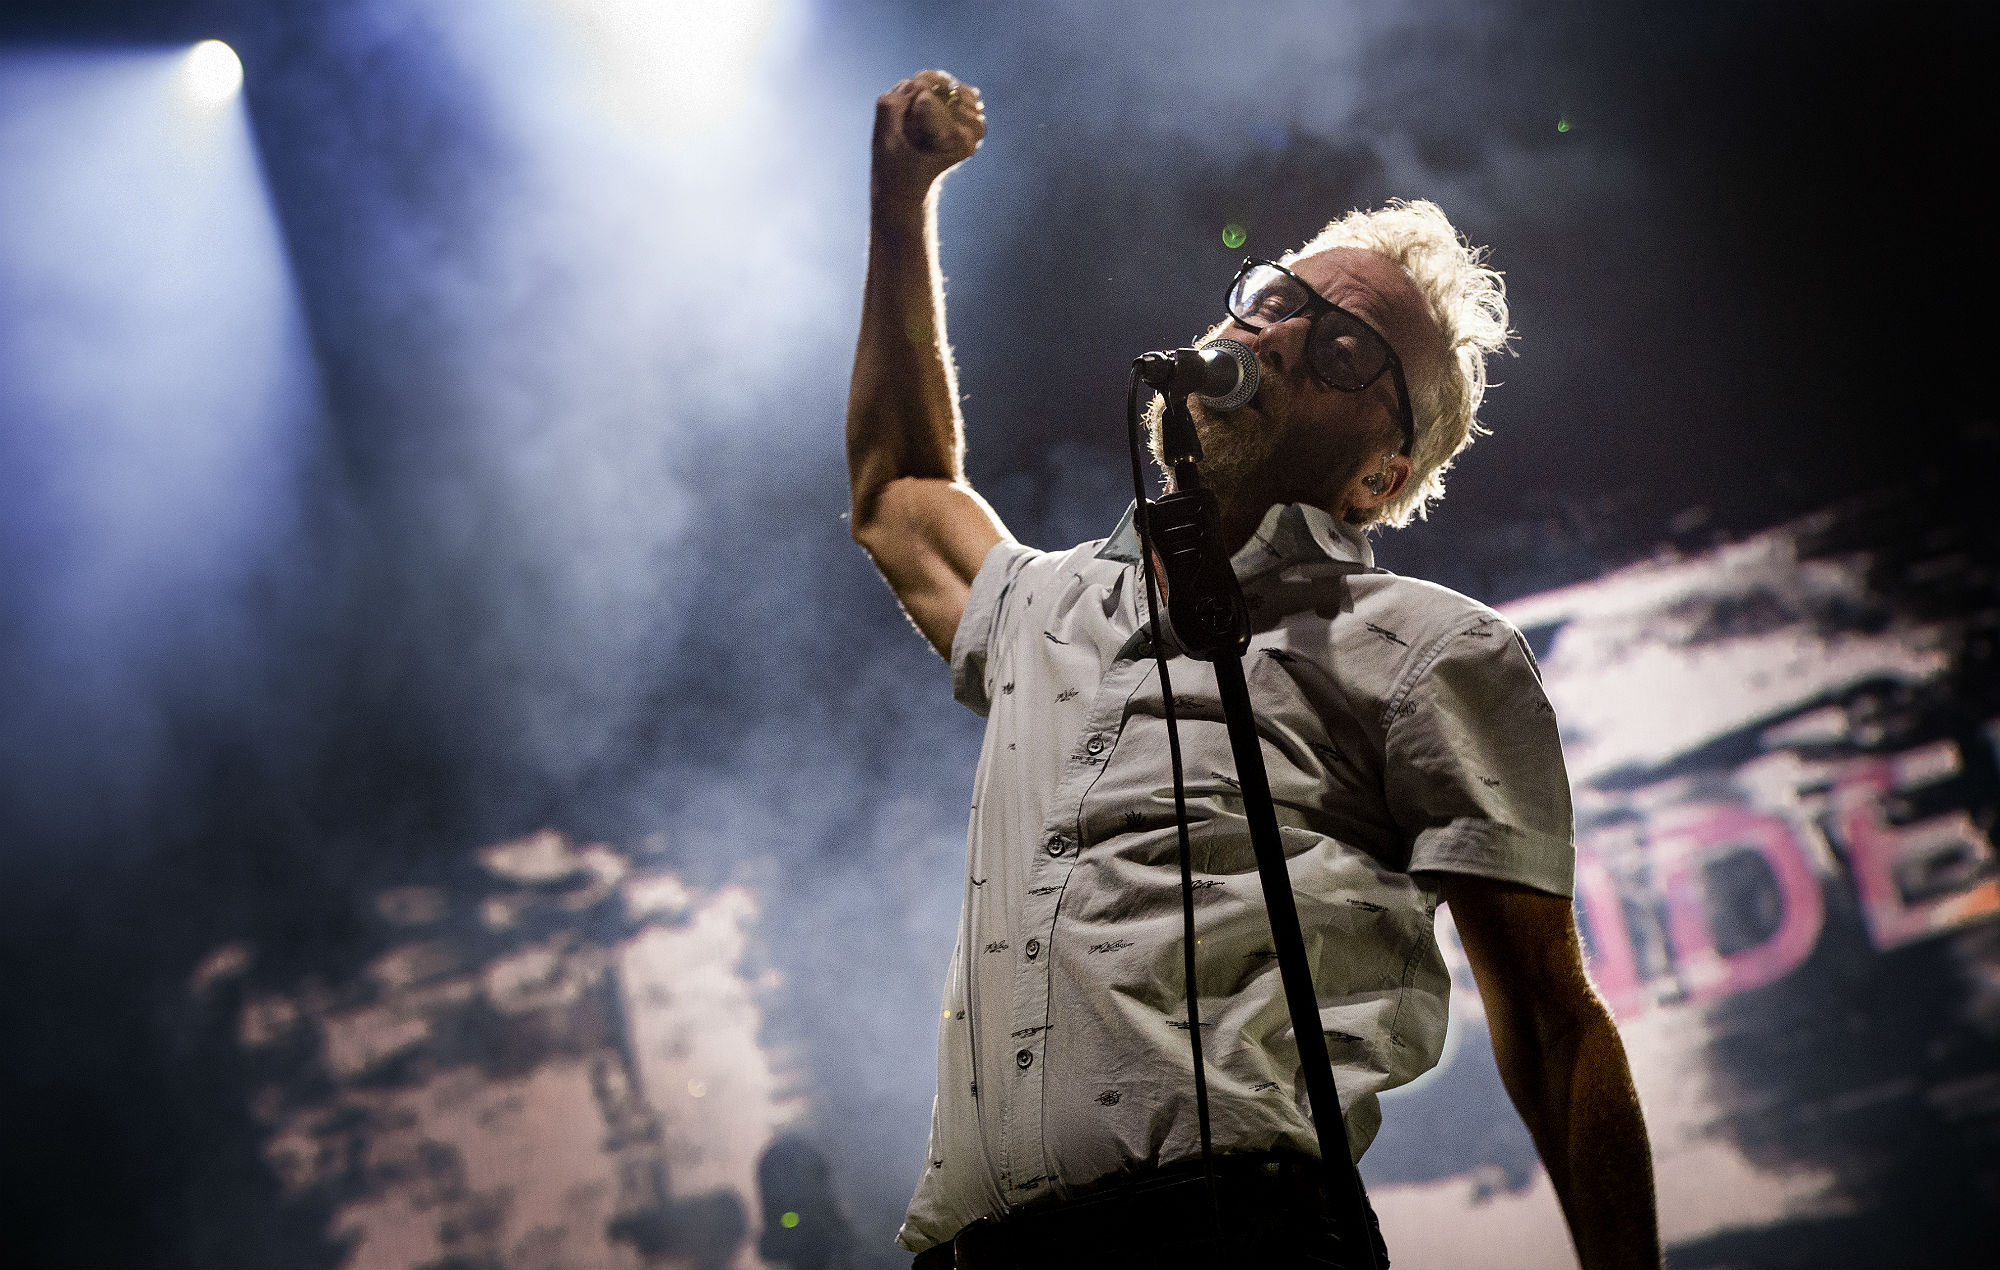 The National tease return of their Homecoming festival for 2020